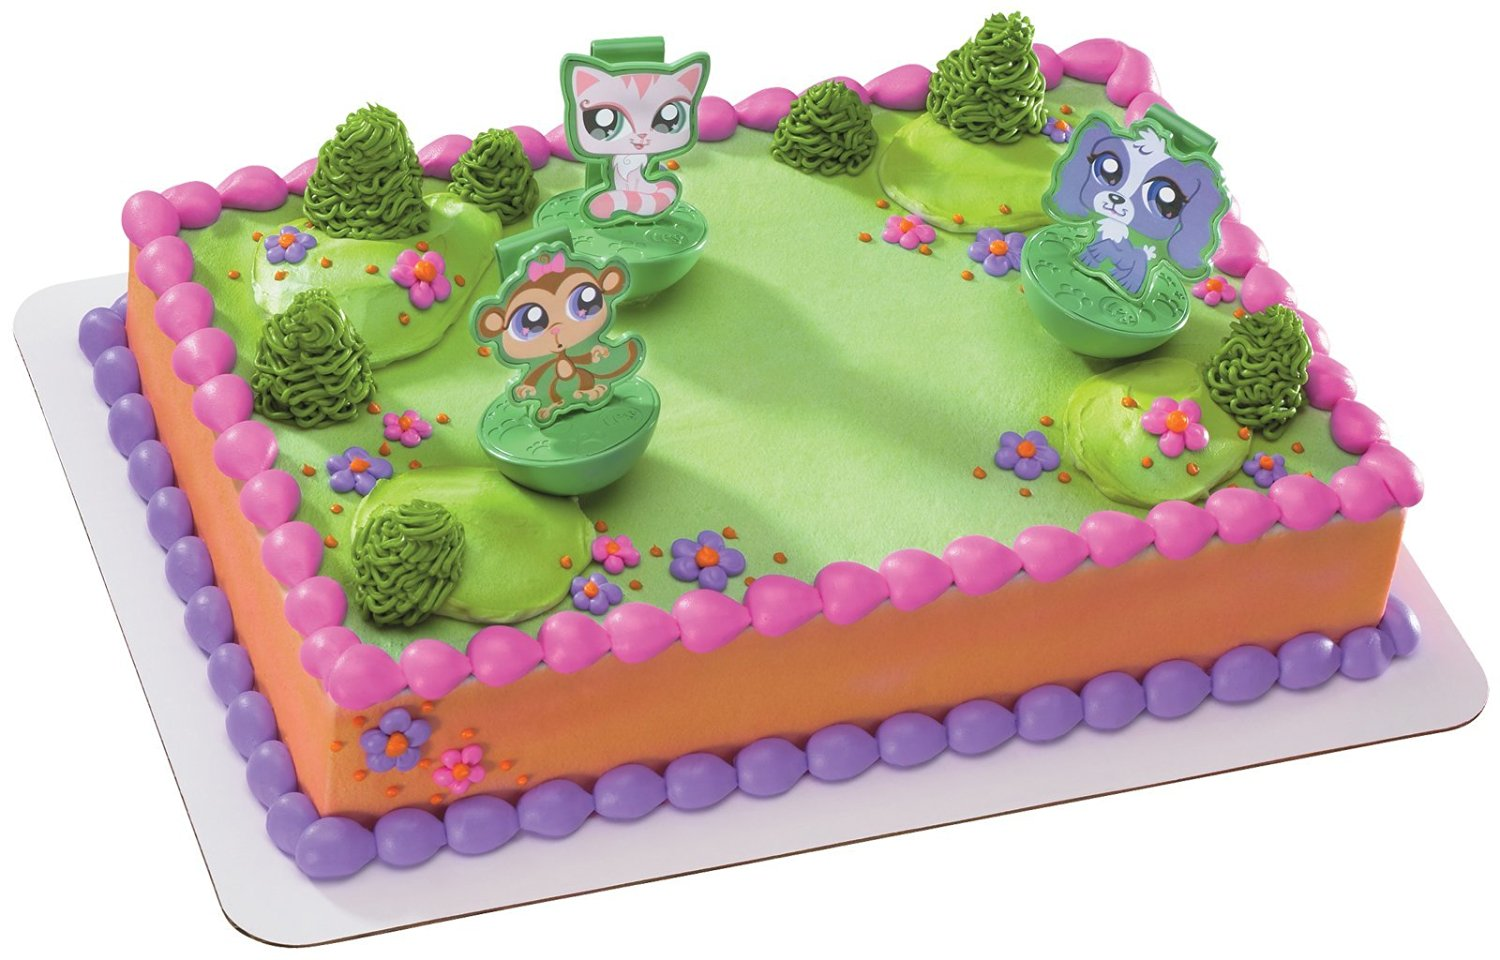 Wondrous Buy Deco Pac Littlest Pet Shop Cake Topper In Cheap Price On Funny Birthday Cards Online Elaedamsfinfo